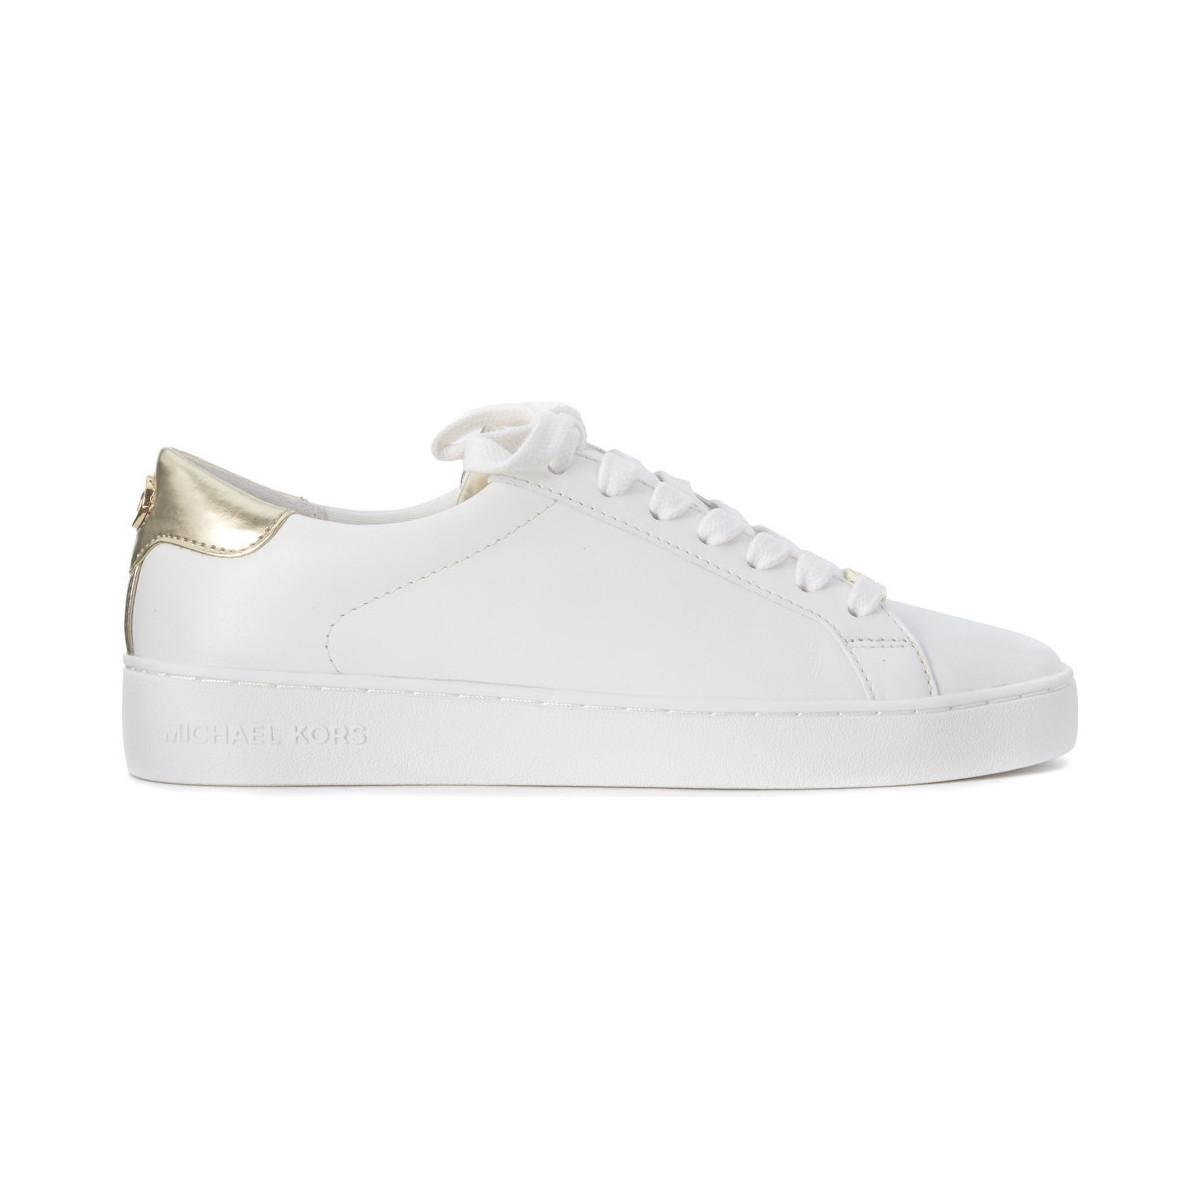 6f3a7e5d3cc3 Michael Kors Irving Lace Up Sneaker In White And Gold Leather ...